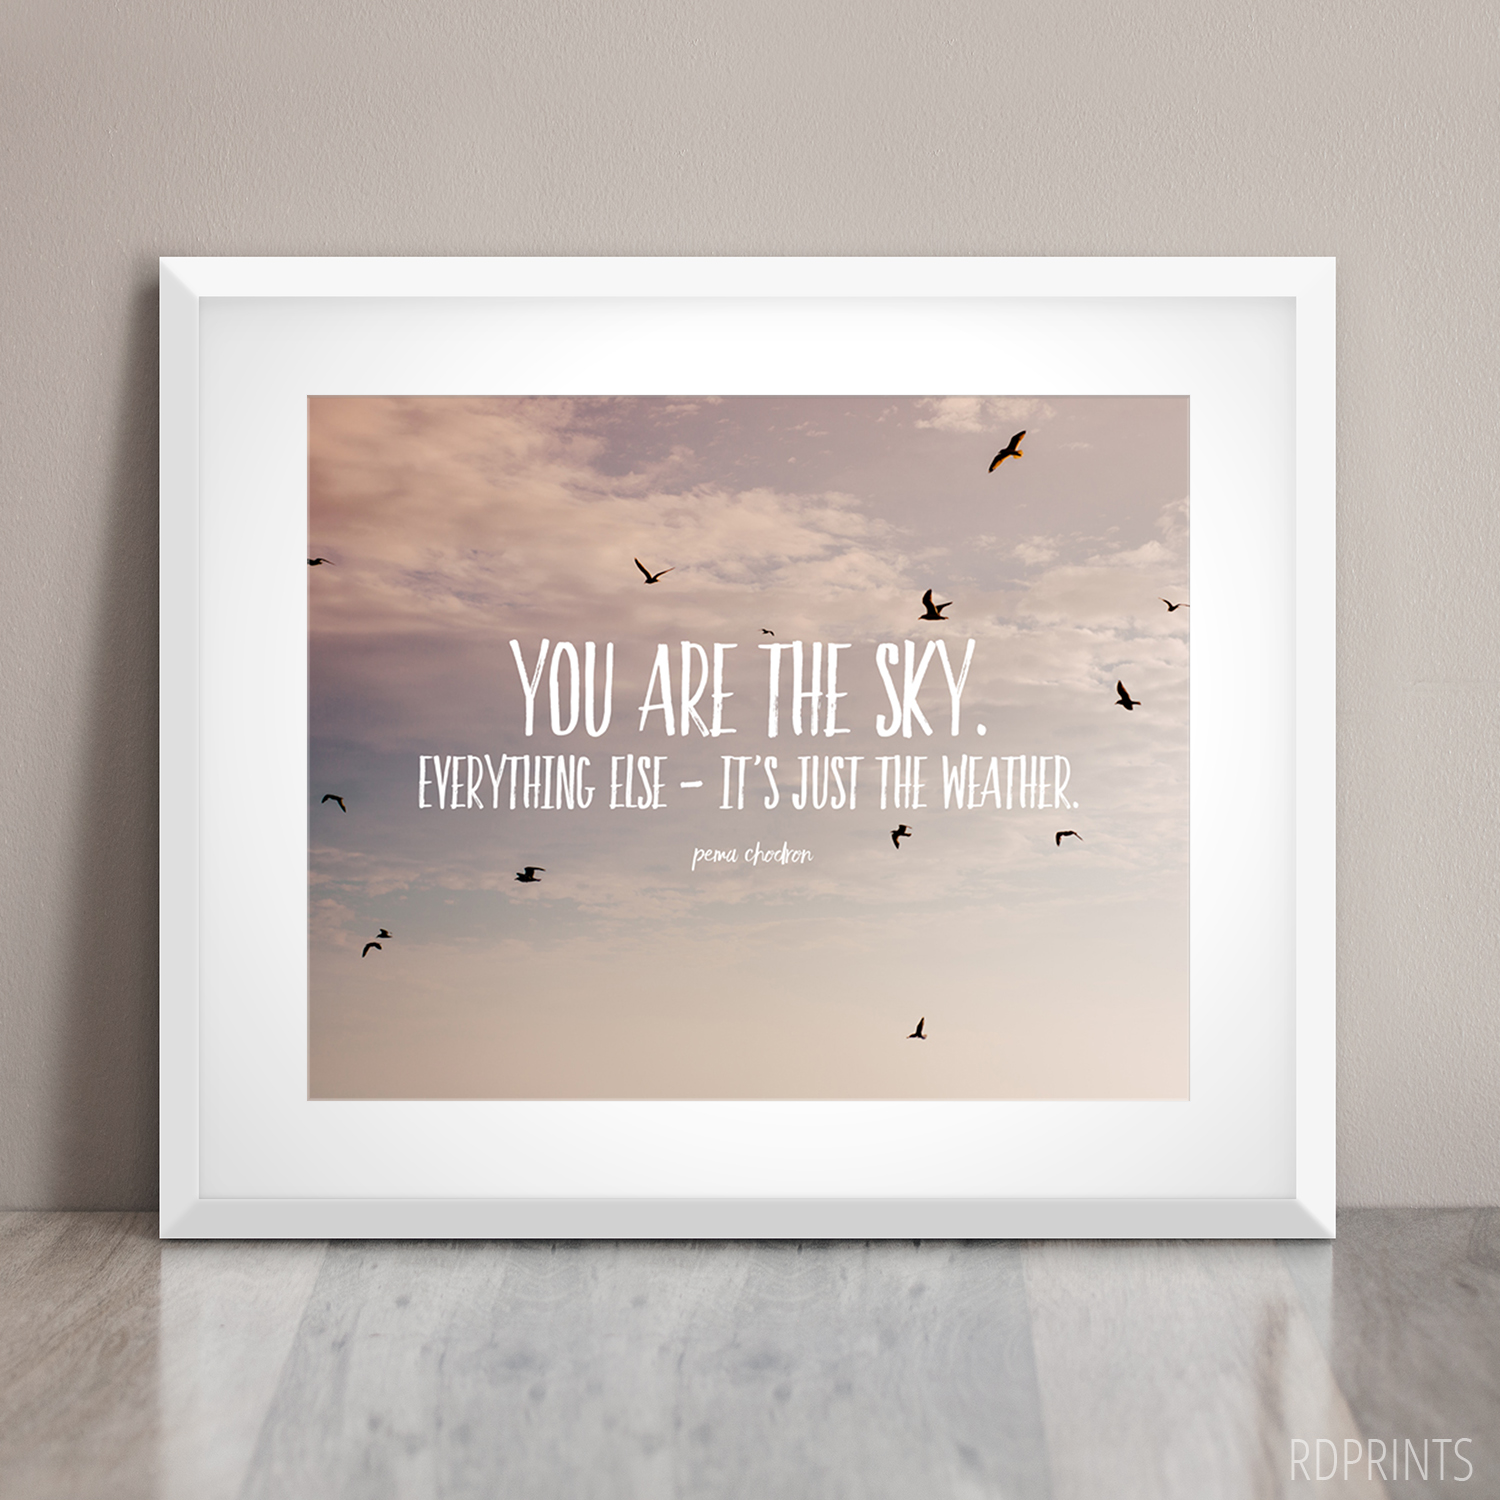 you are the sky | word art | RDPRINTS on ETSY